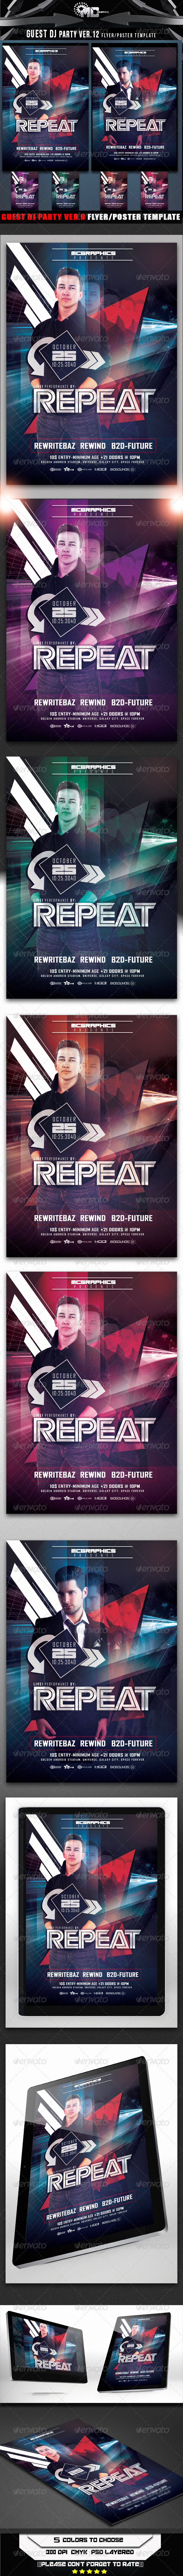 GraphicRiver Guest DJ Party Ver.12 Flyer Poster Template 8438872